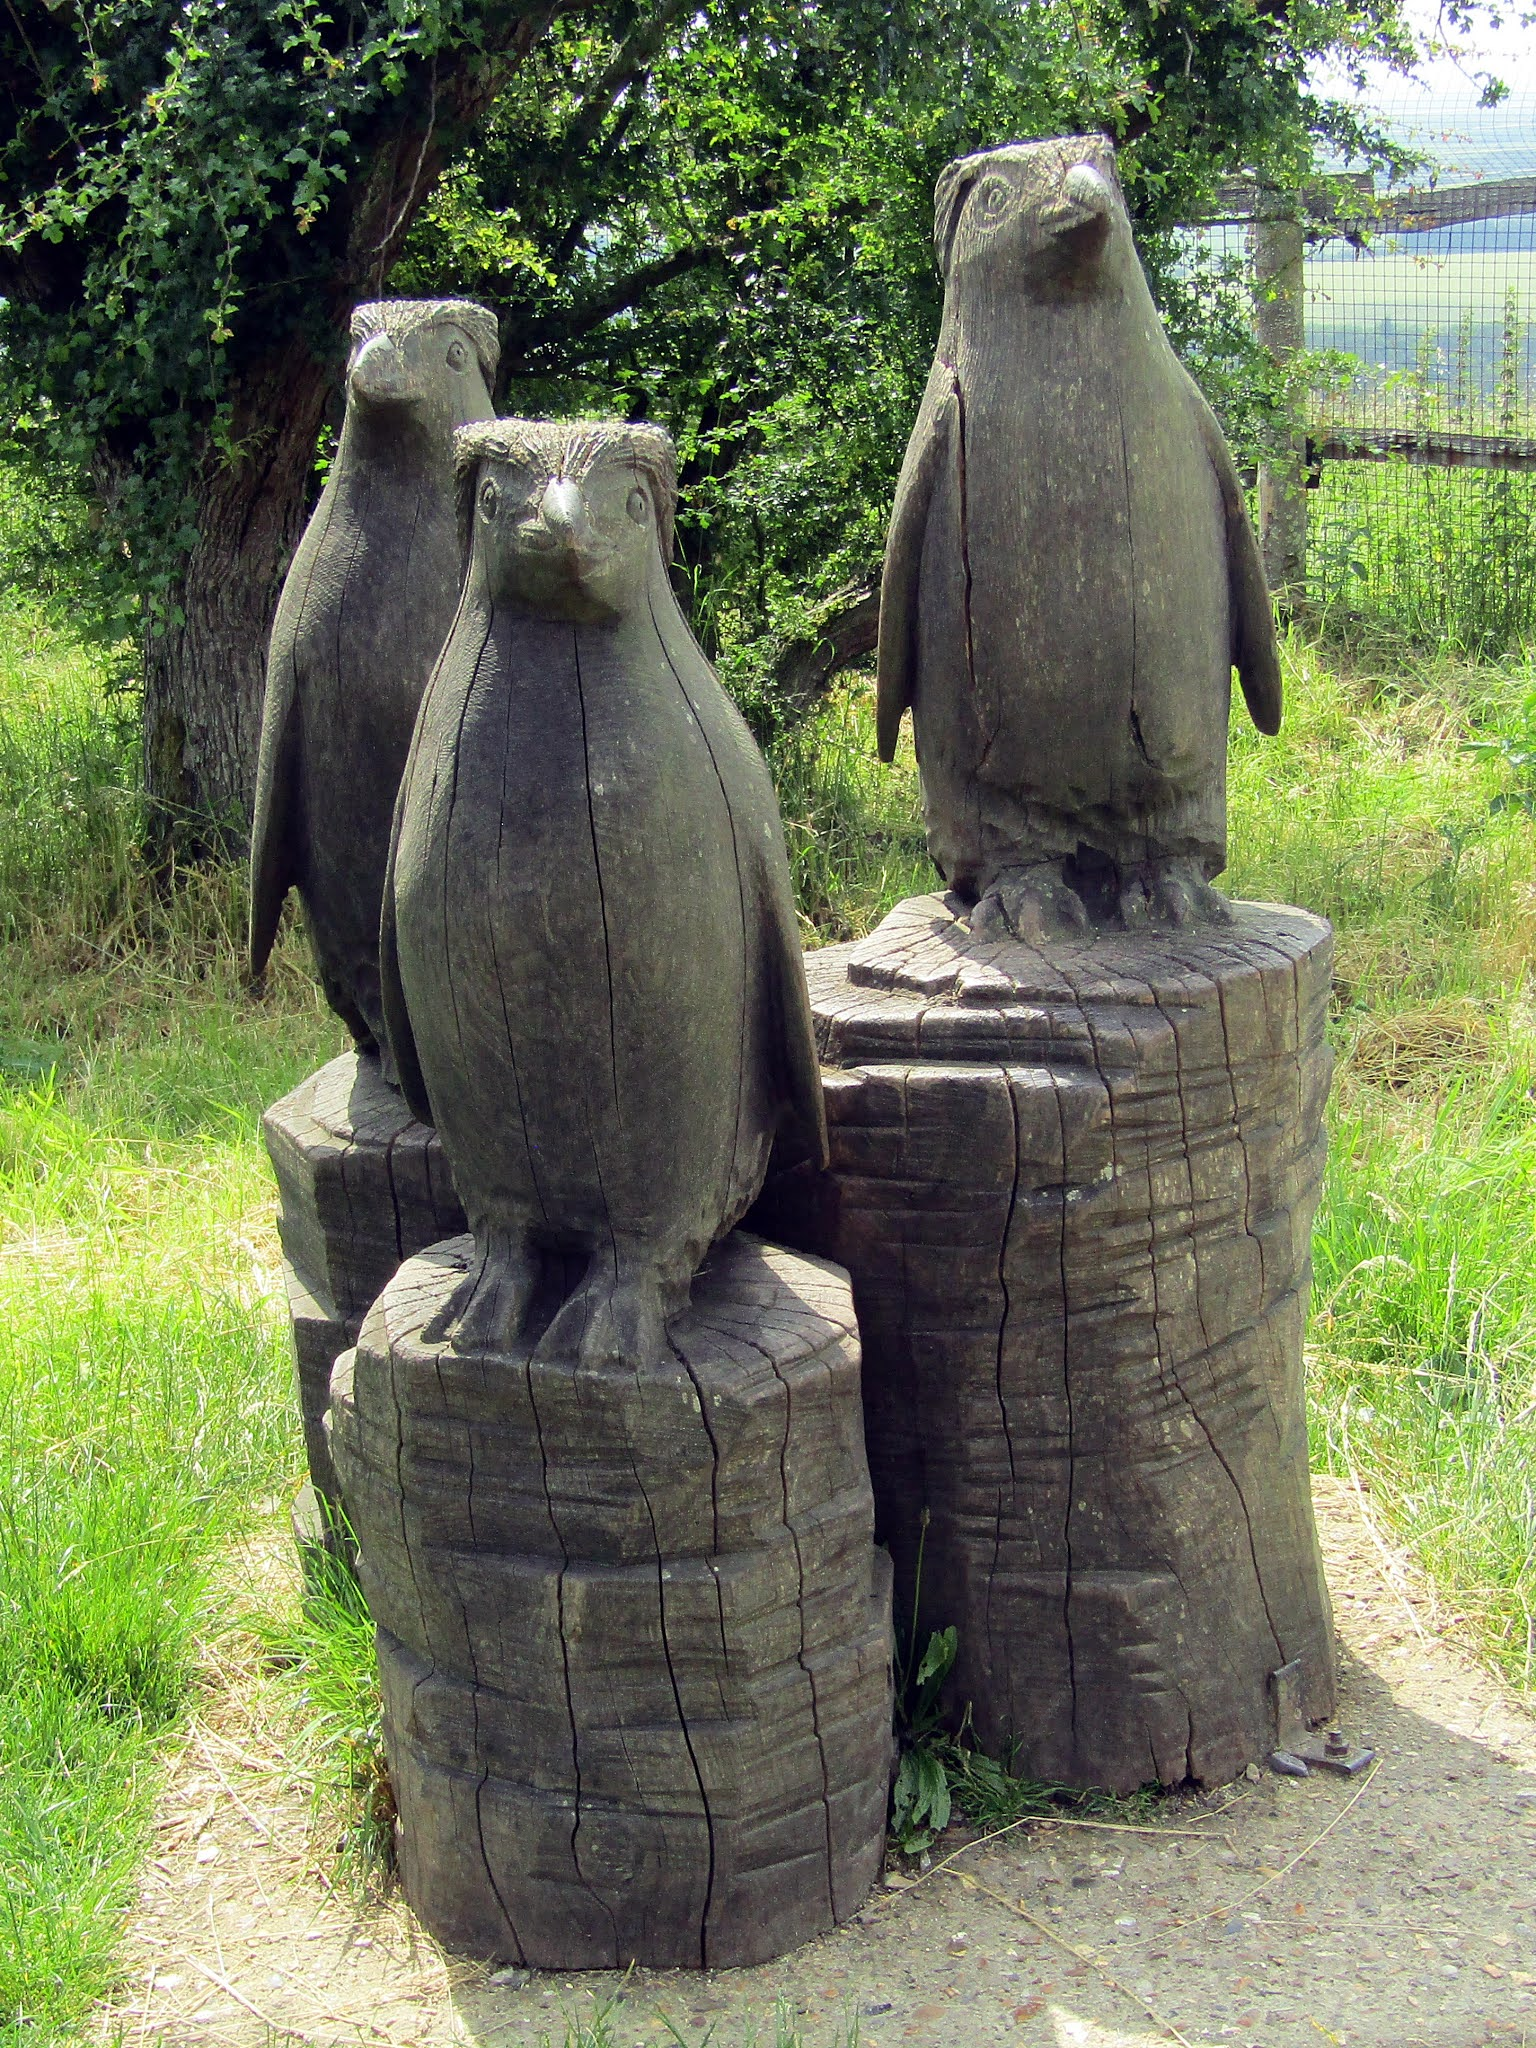 A photo of wooden rockhopper penguin statues at Whipsnade Zoo.